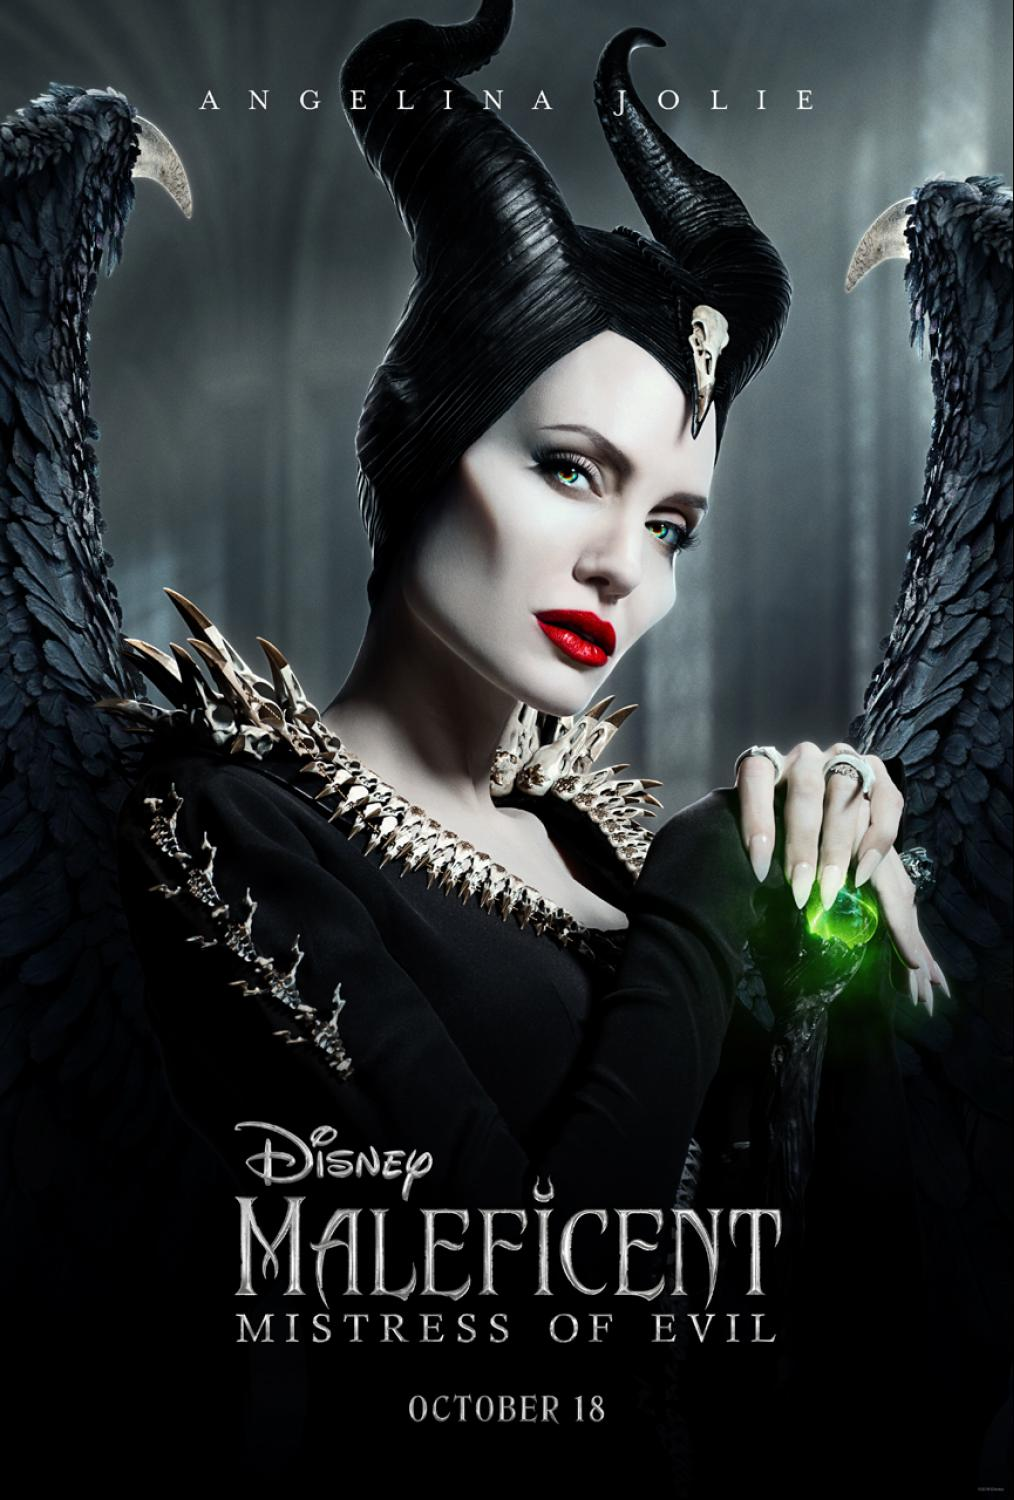 Disney's Maleficent: Mistress of Evil Trailer Reaction